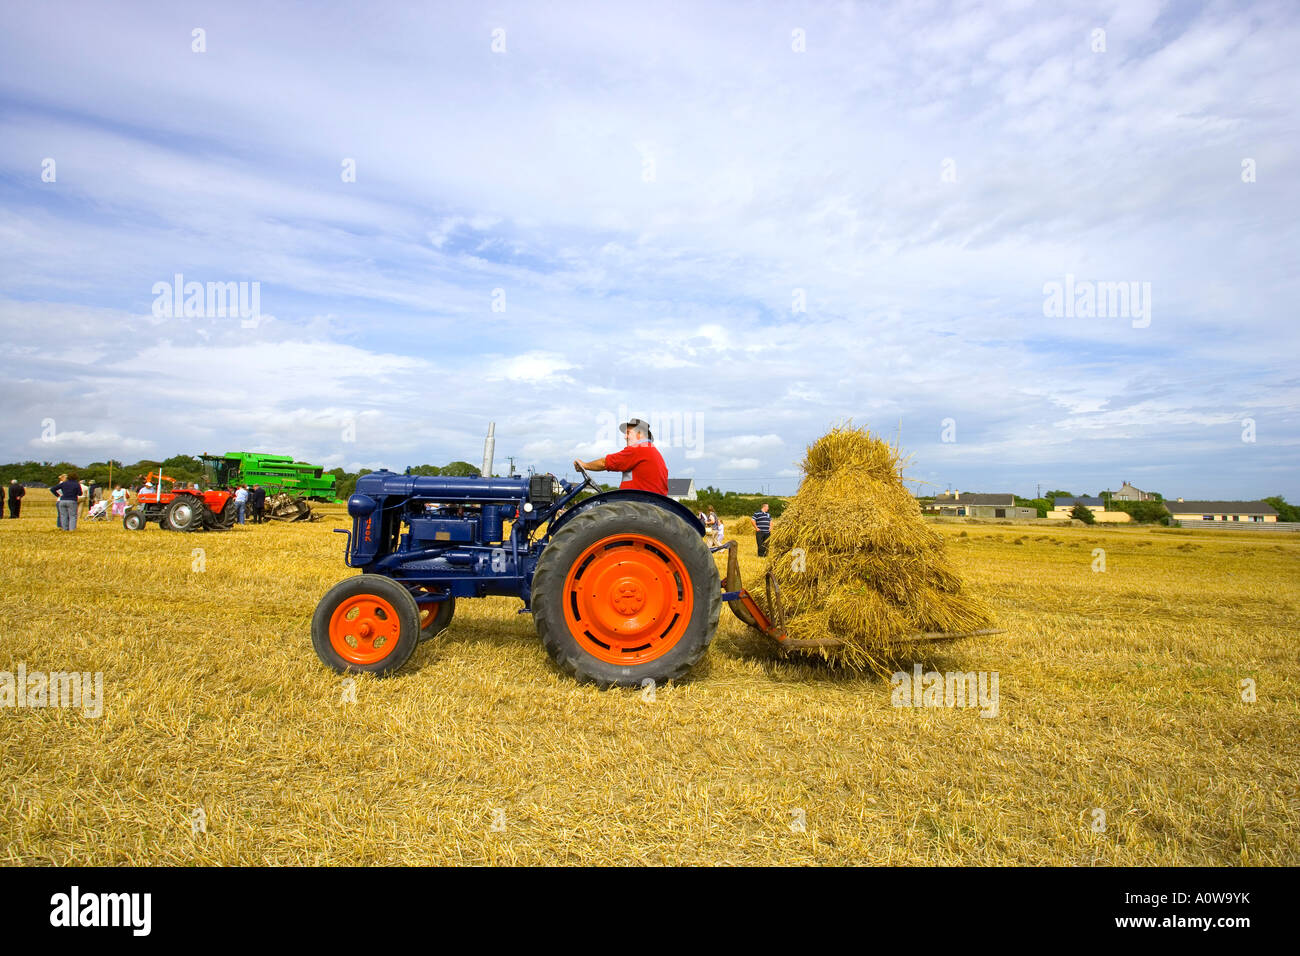 Farmer On Tractor : Farmer on tractor at harvest time in the fields stock